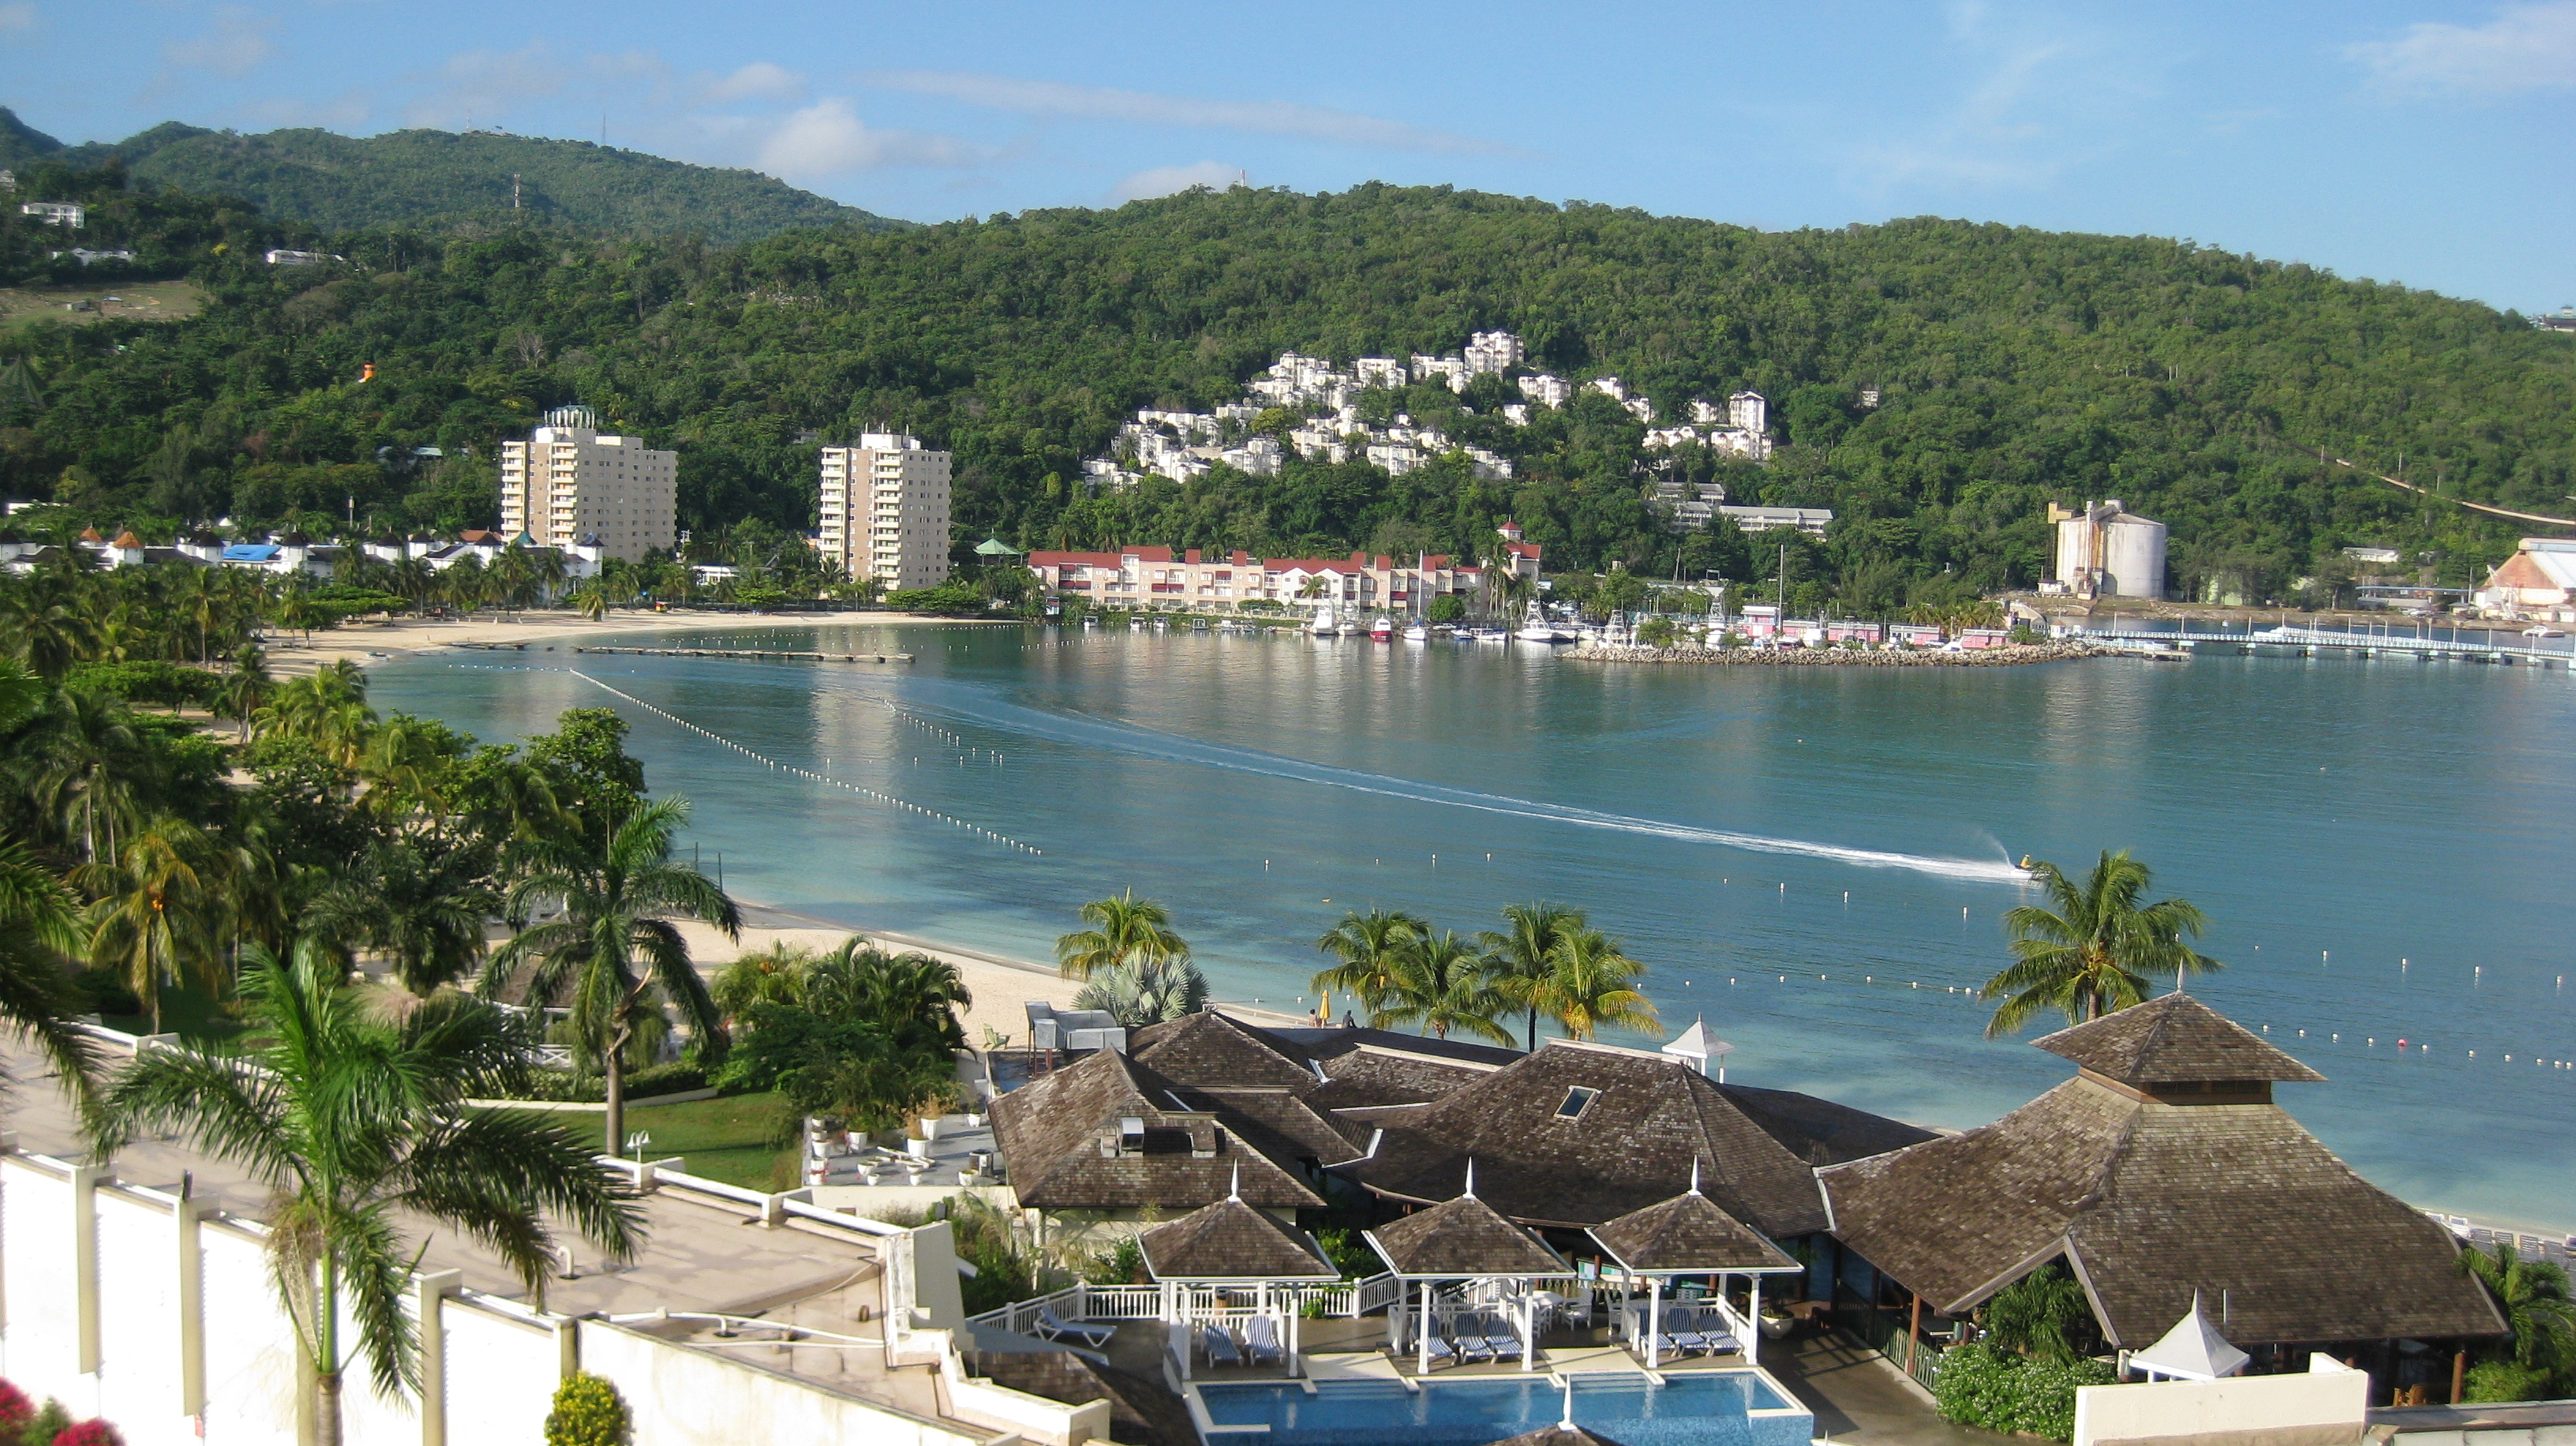 The Top 4 Tours For Ocho Rios And Grand Cayman Jamaica